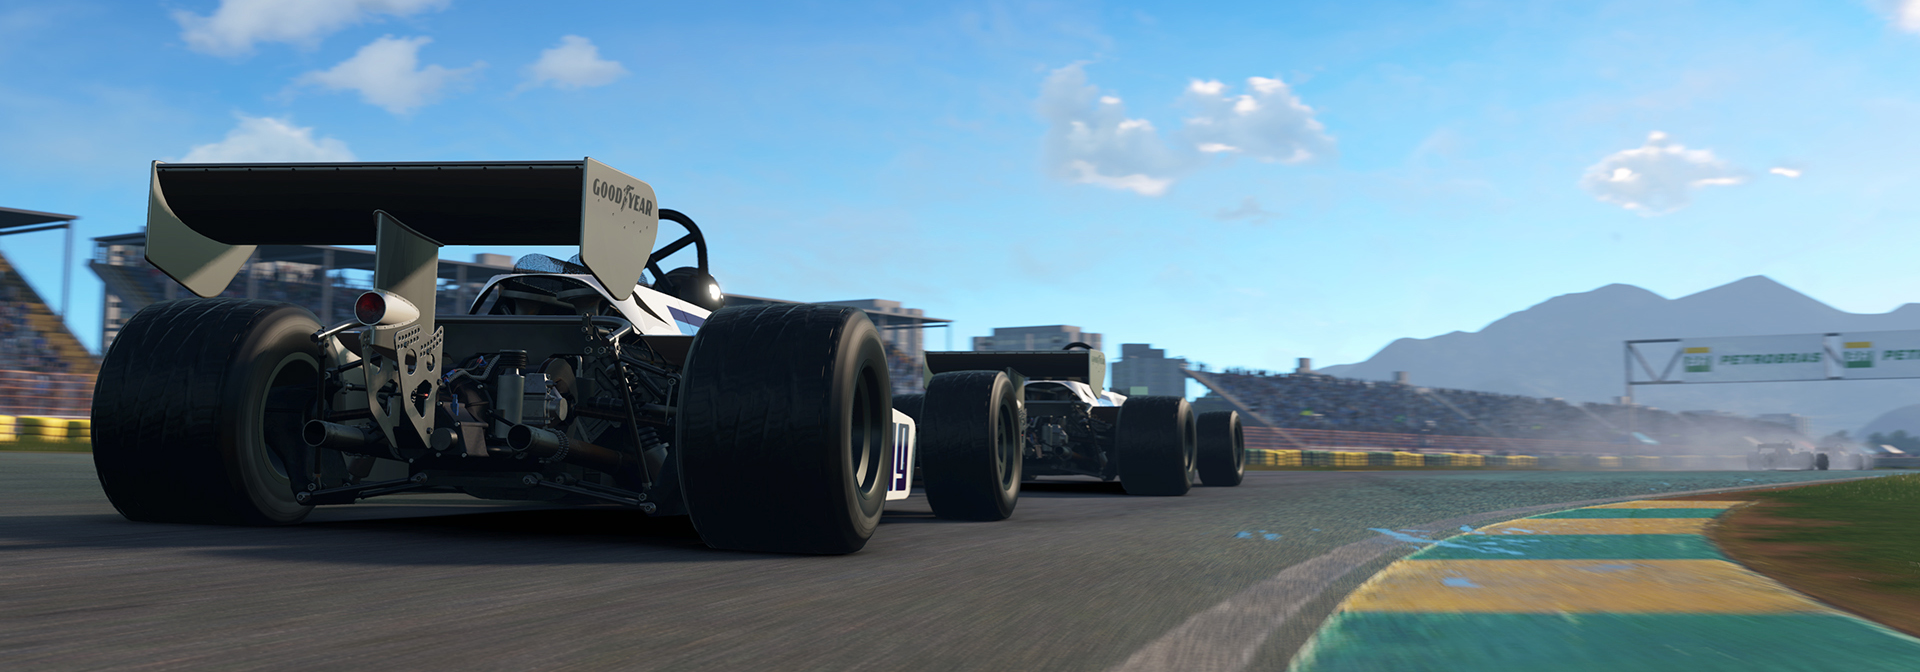 Automobilista 2 v1.1.3.5 Now Available, Adds Lotus 79